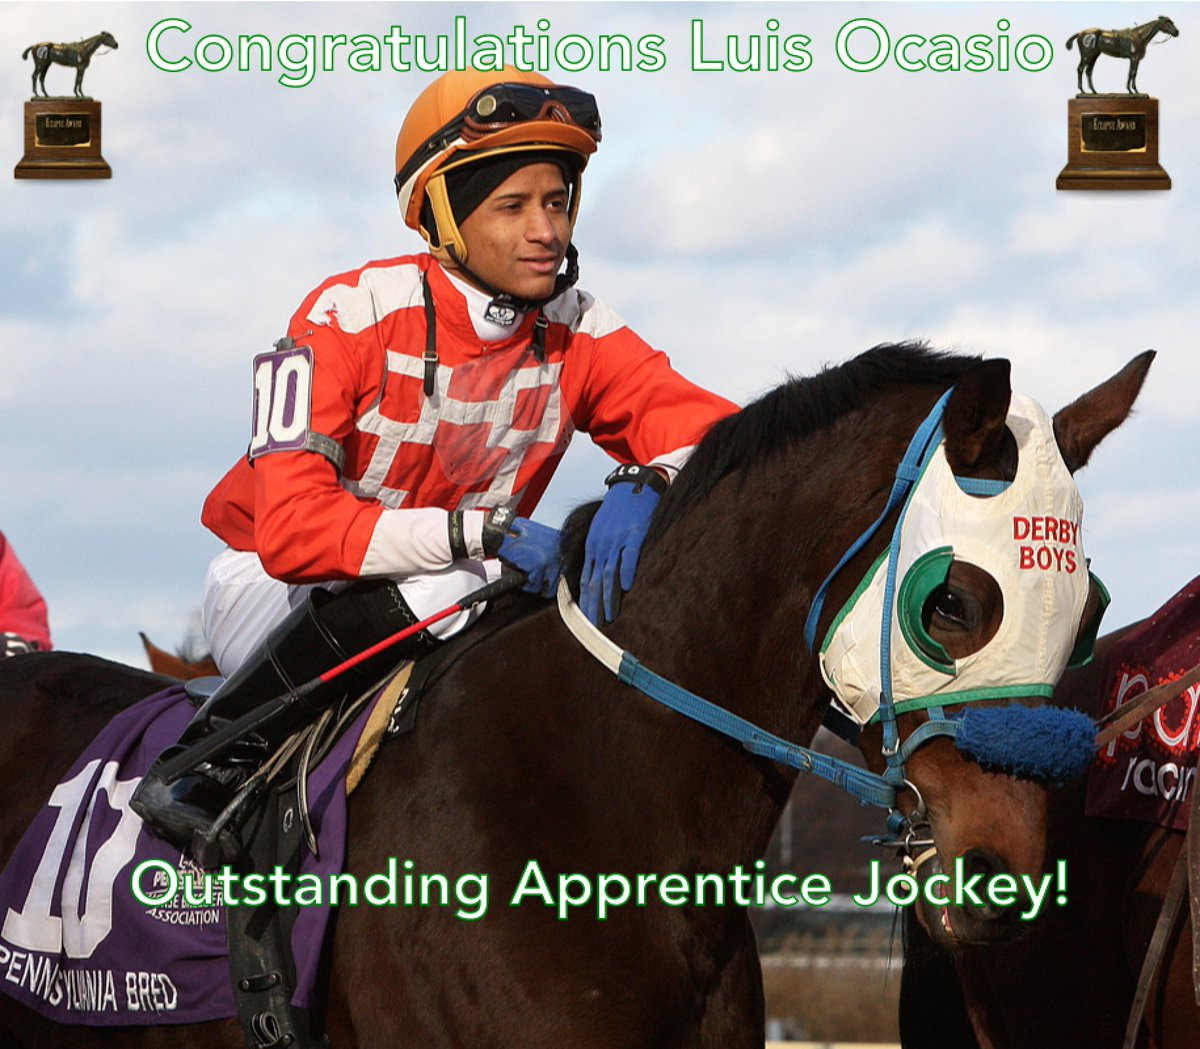 Congratulations Luis Ocasio, the 2016 #EclipseAwards winner for Outsta...